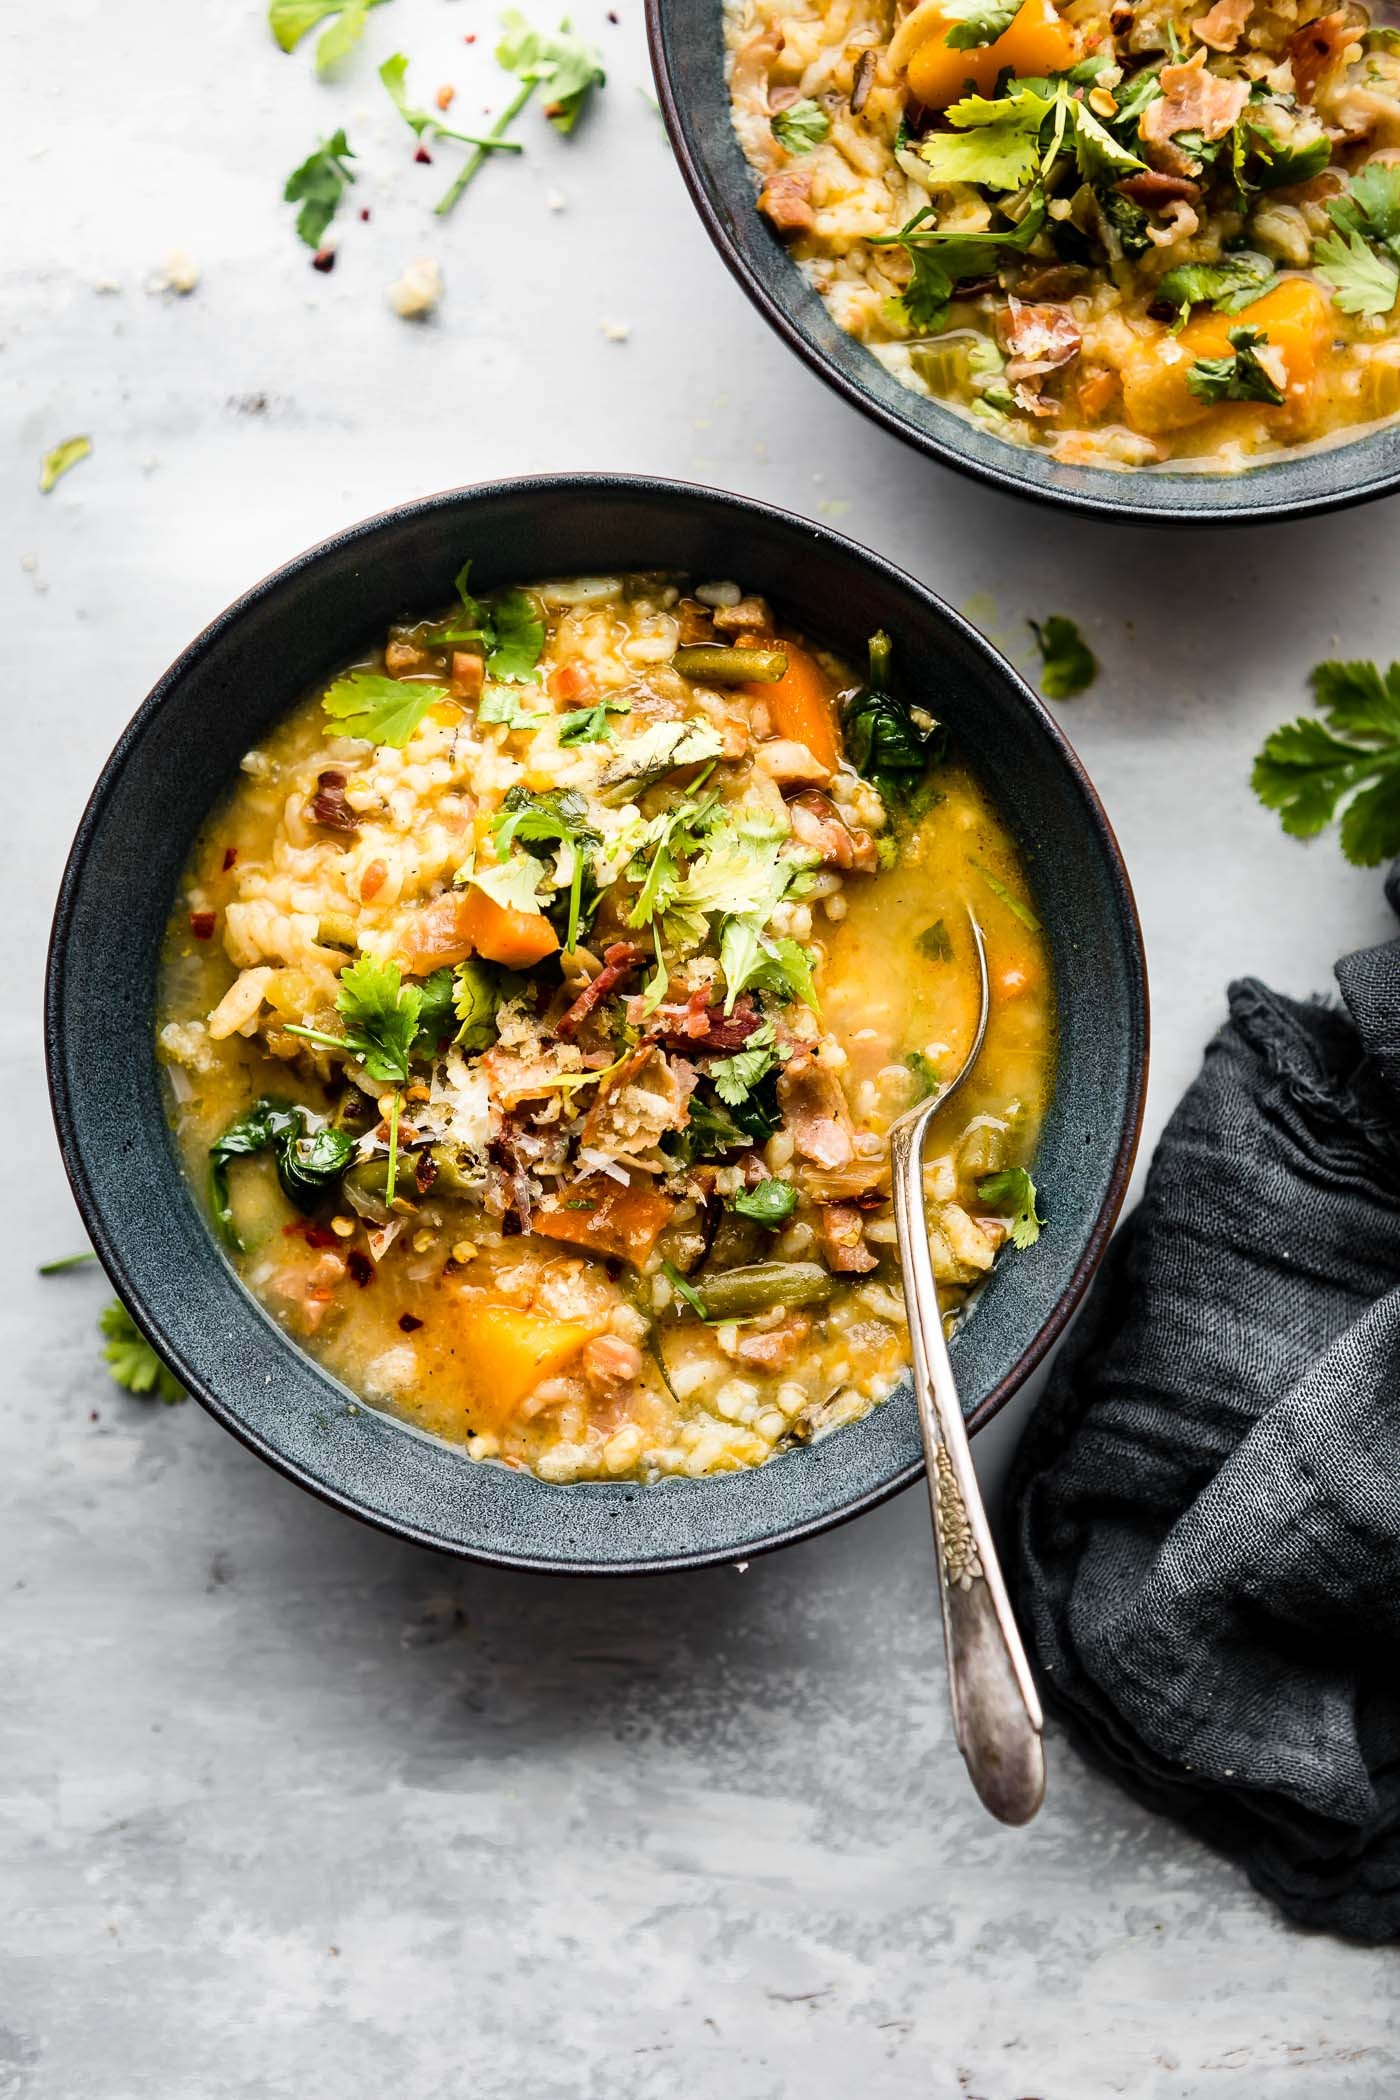 Instant Pot Soup Recipes Healthy  Everything But the Kitchen Sink Soup Instant Pot or Stove